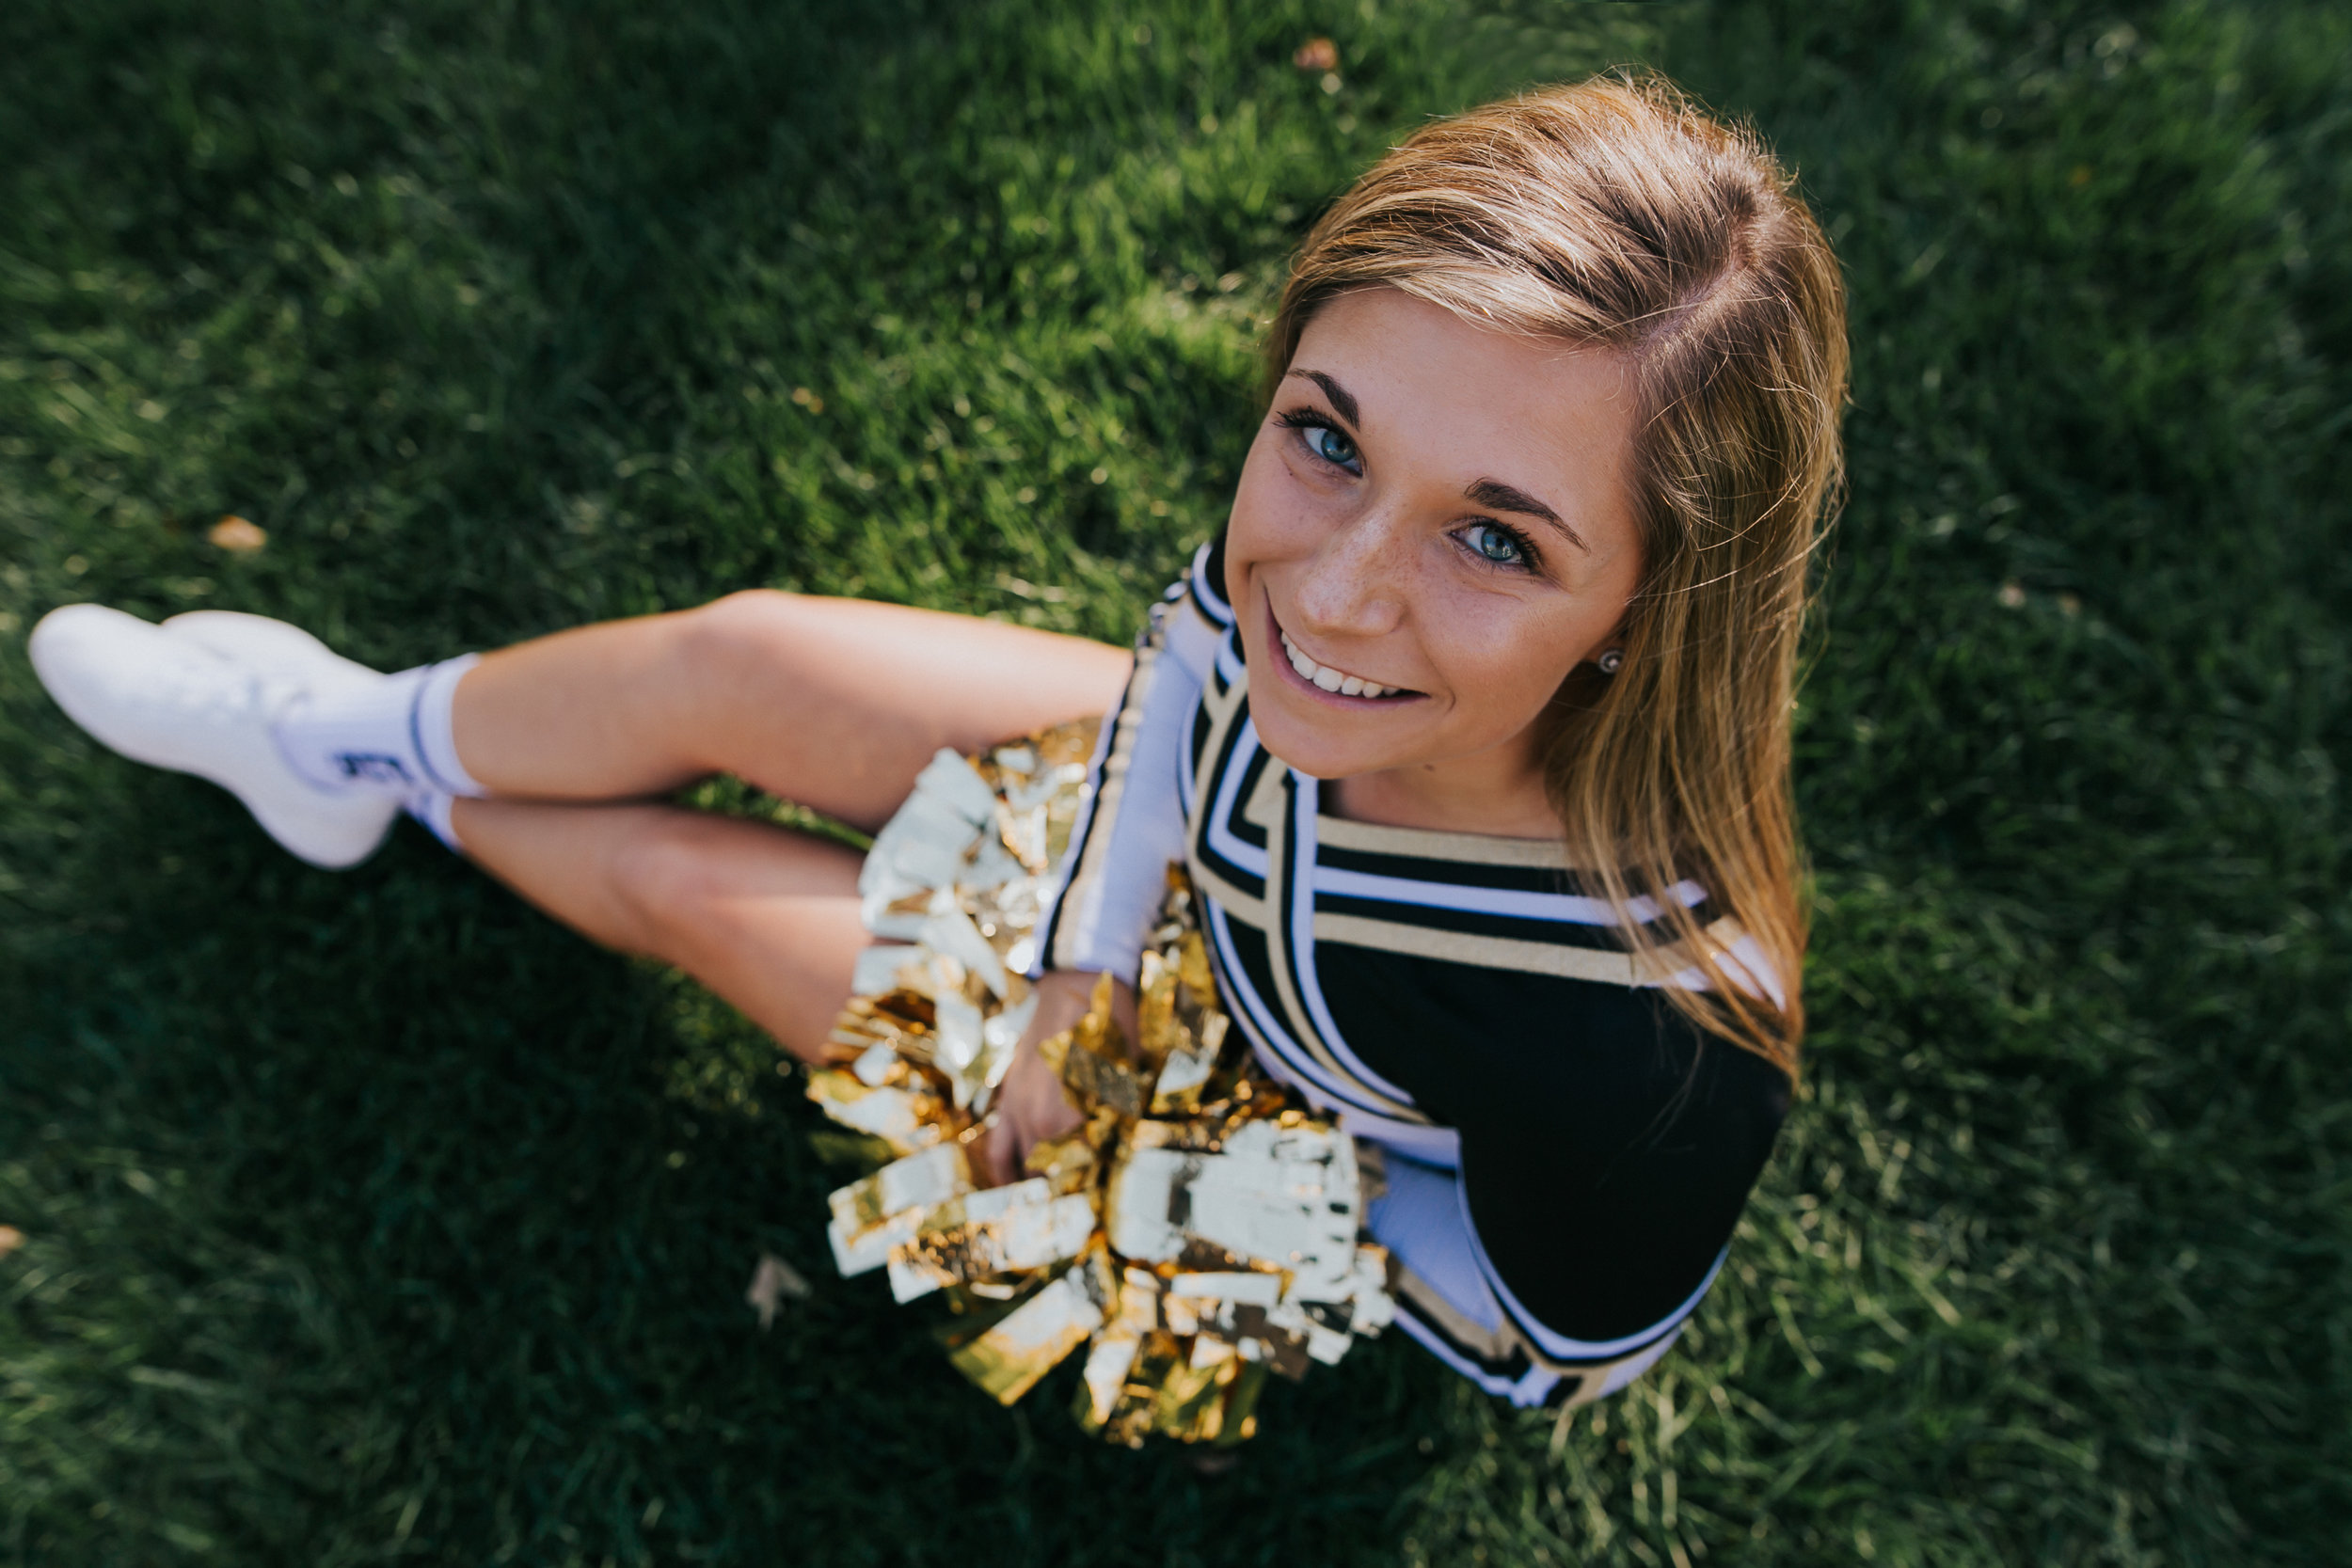 Senior Pictures at the University of Notre Dame, Cheerleader, Penn High School, Pom Poms, From Above